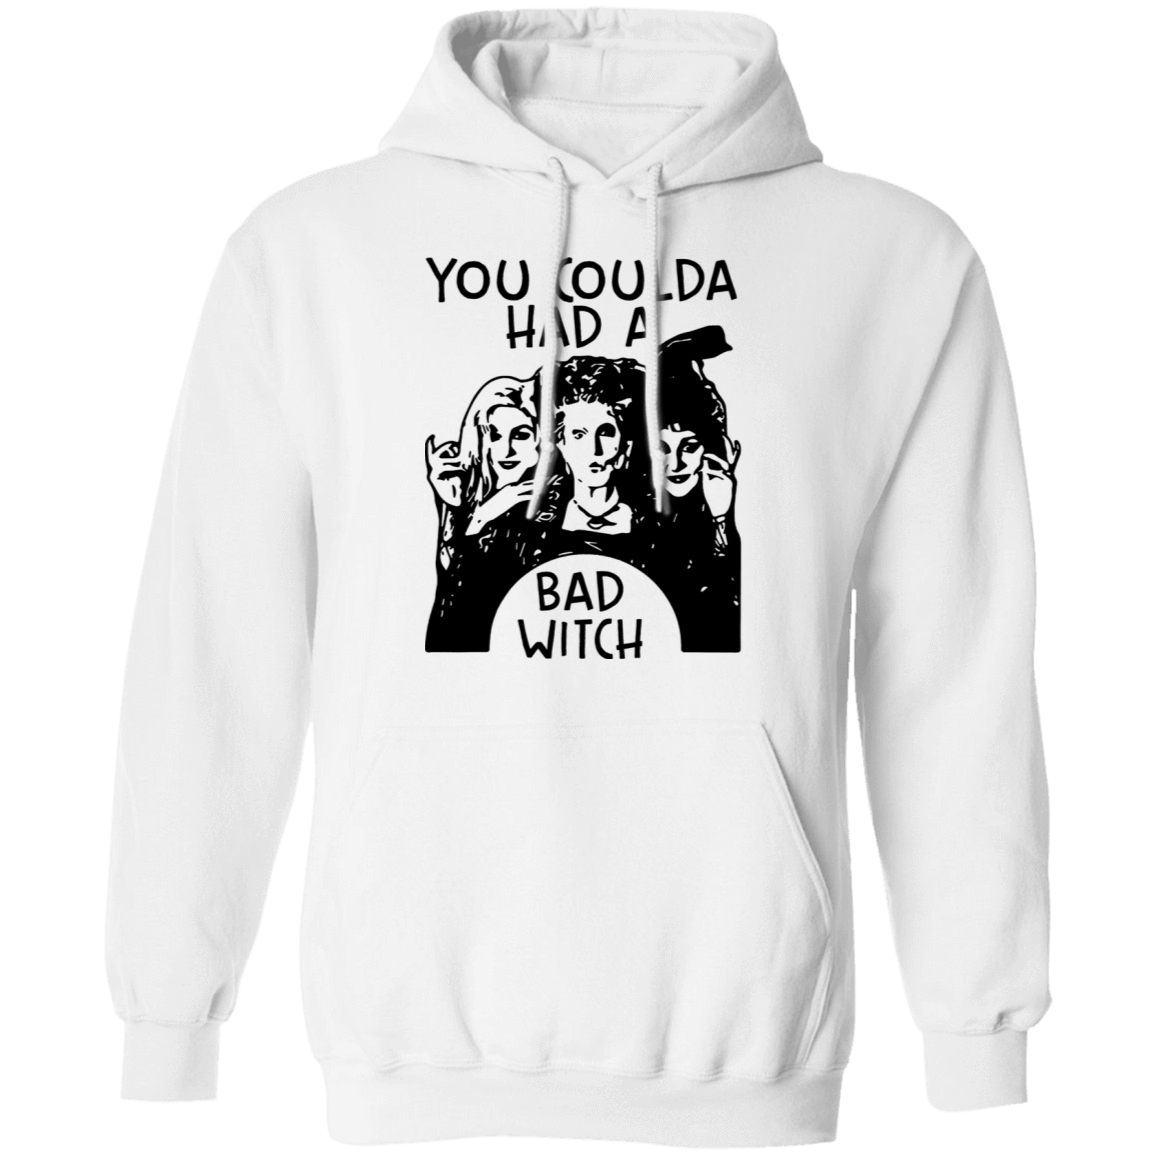 Hocus Pocus You Coulda Had A Bad Witch T-Shirts, Hoodies, Tank 541-4744-79820344-23183 - Tee Ript